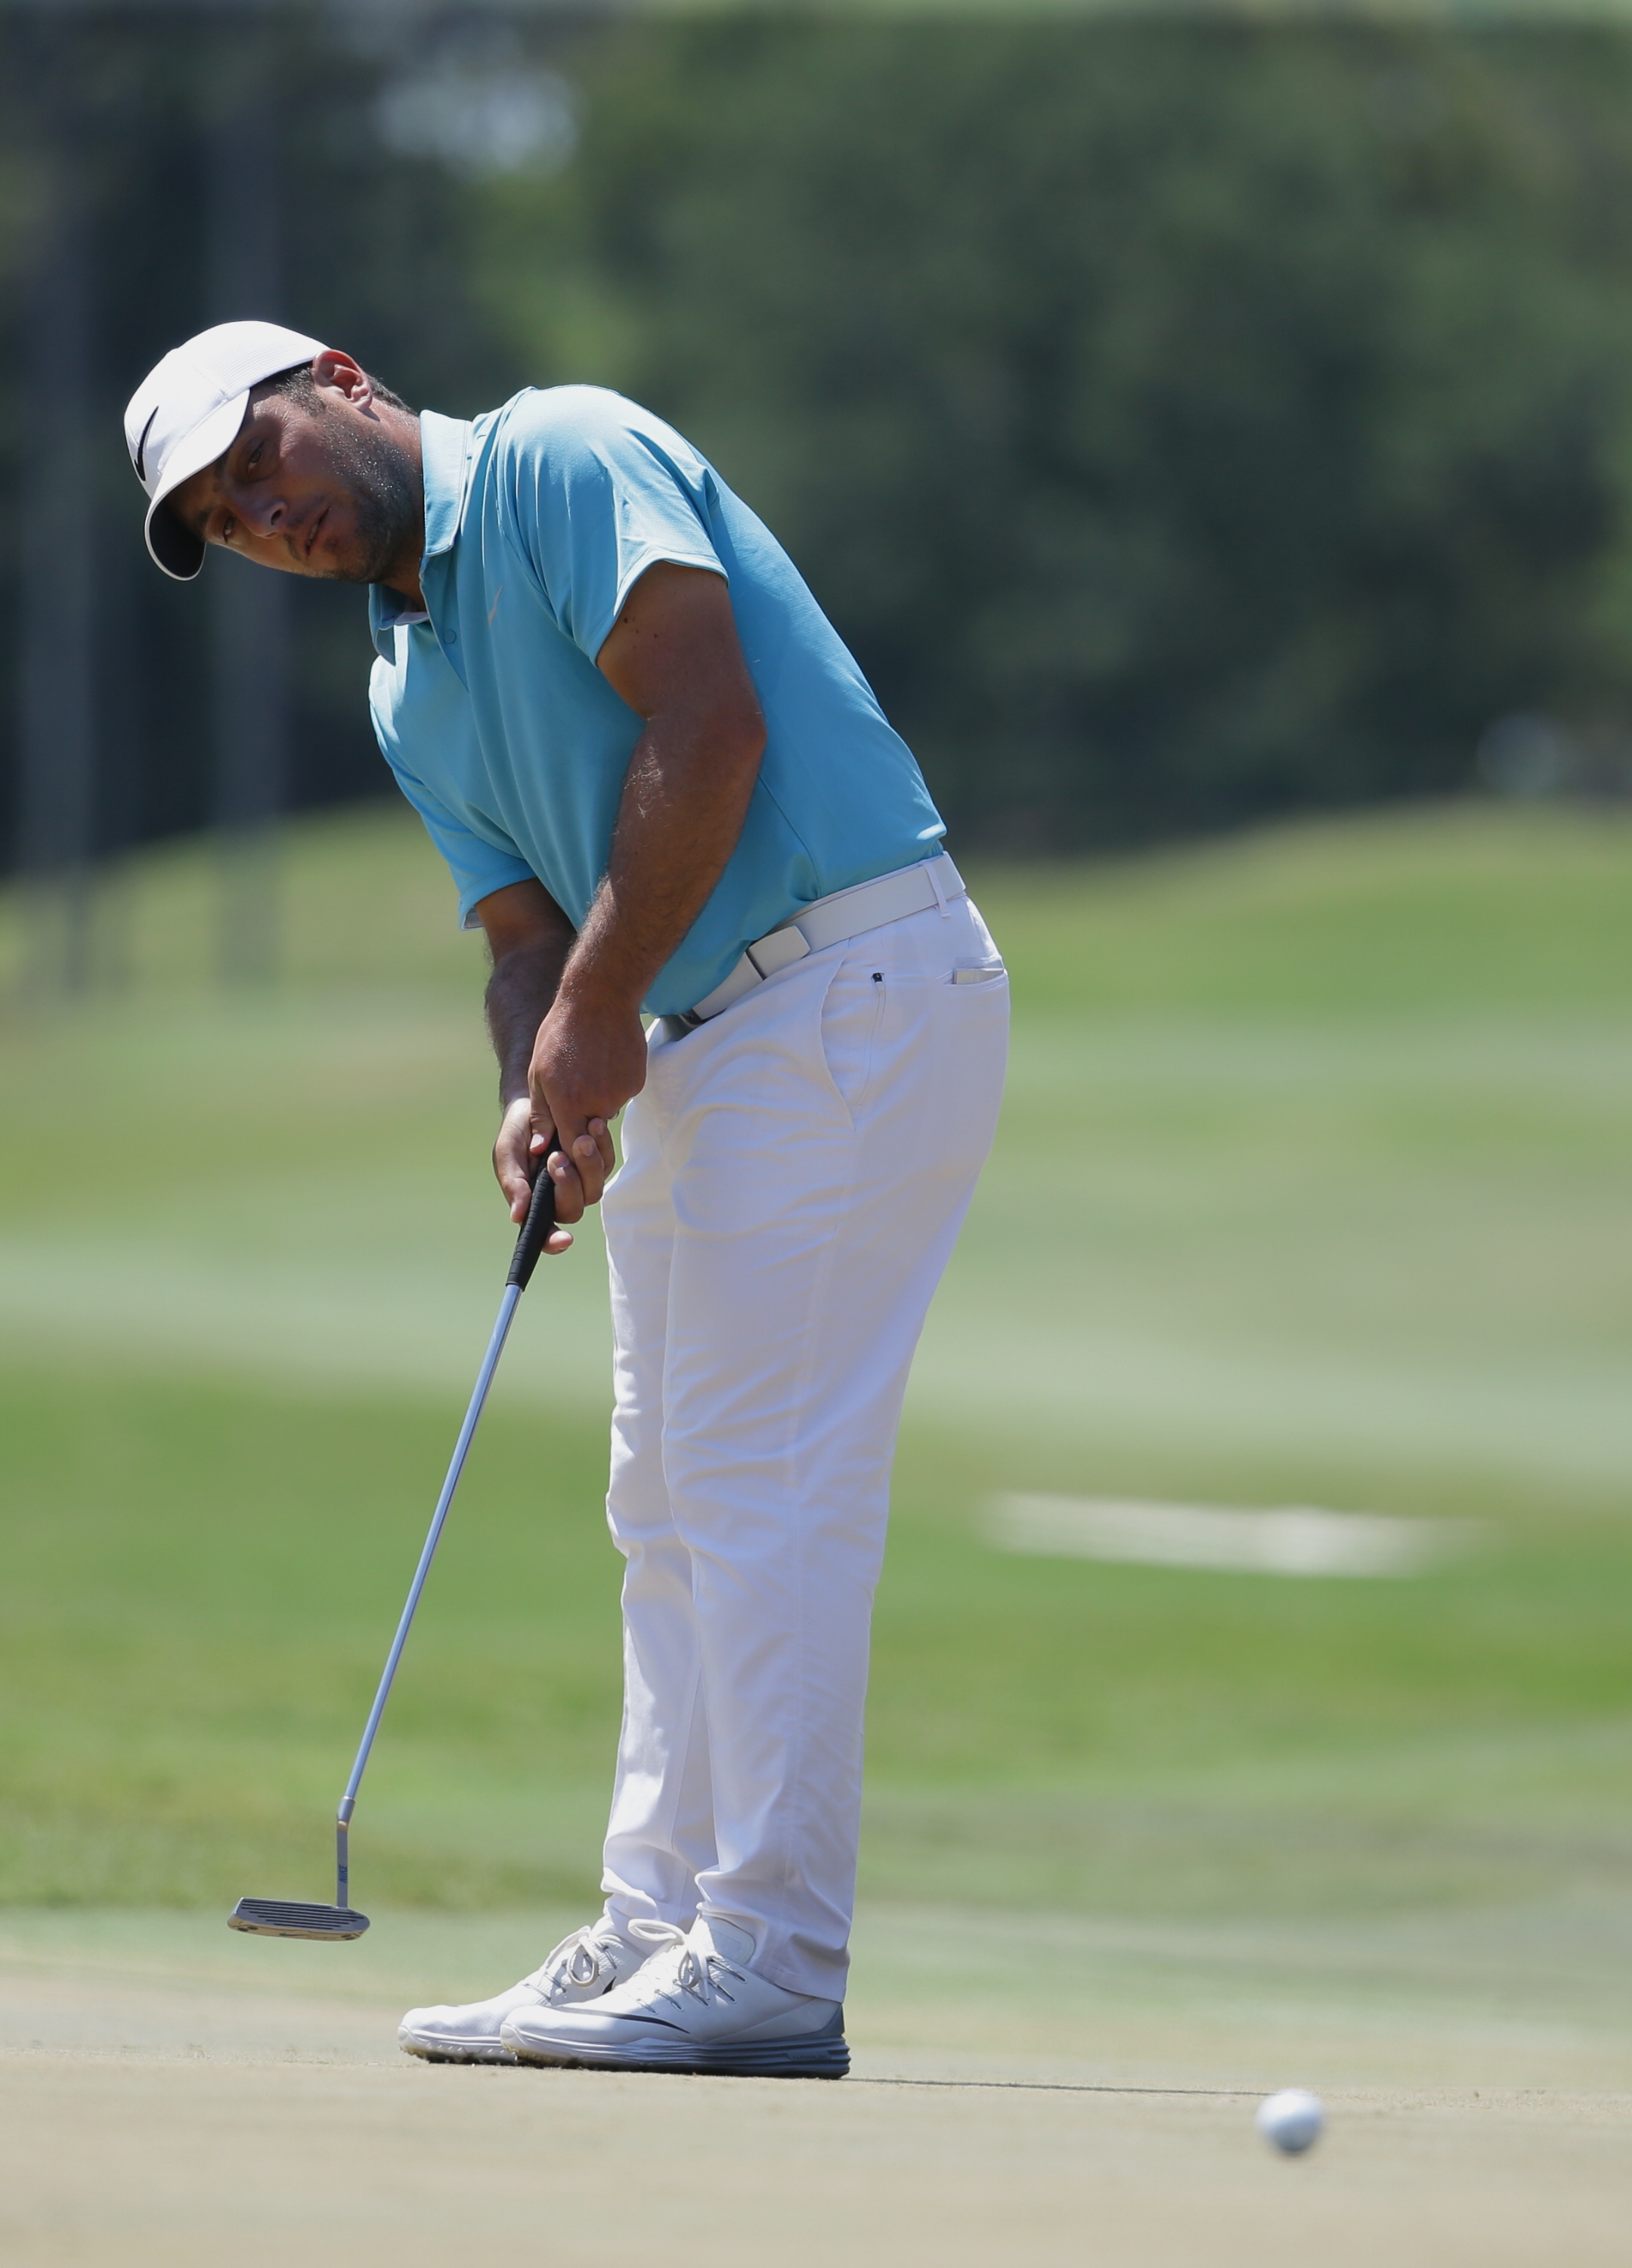 Francesco Molinari of Italy, watches his putt on the fifth green during the third round of The Players Championship golf tournament Saturday, May 14, 2016, in Ponte Vedra Beach, Fla. (AP Photo/Lynne Sladky)